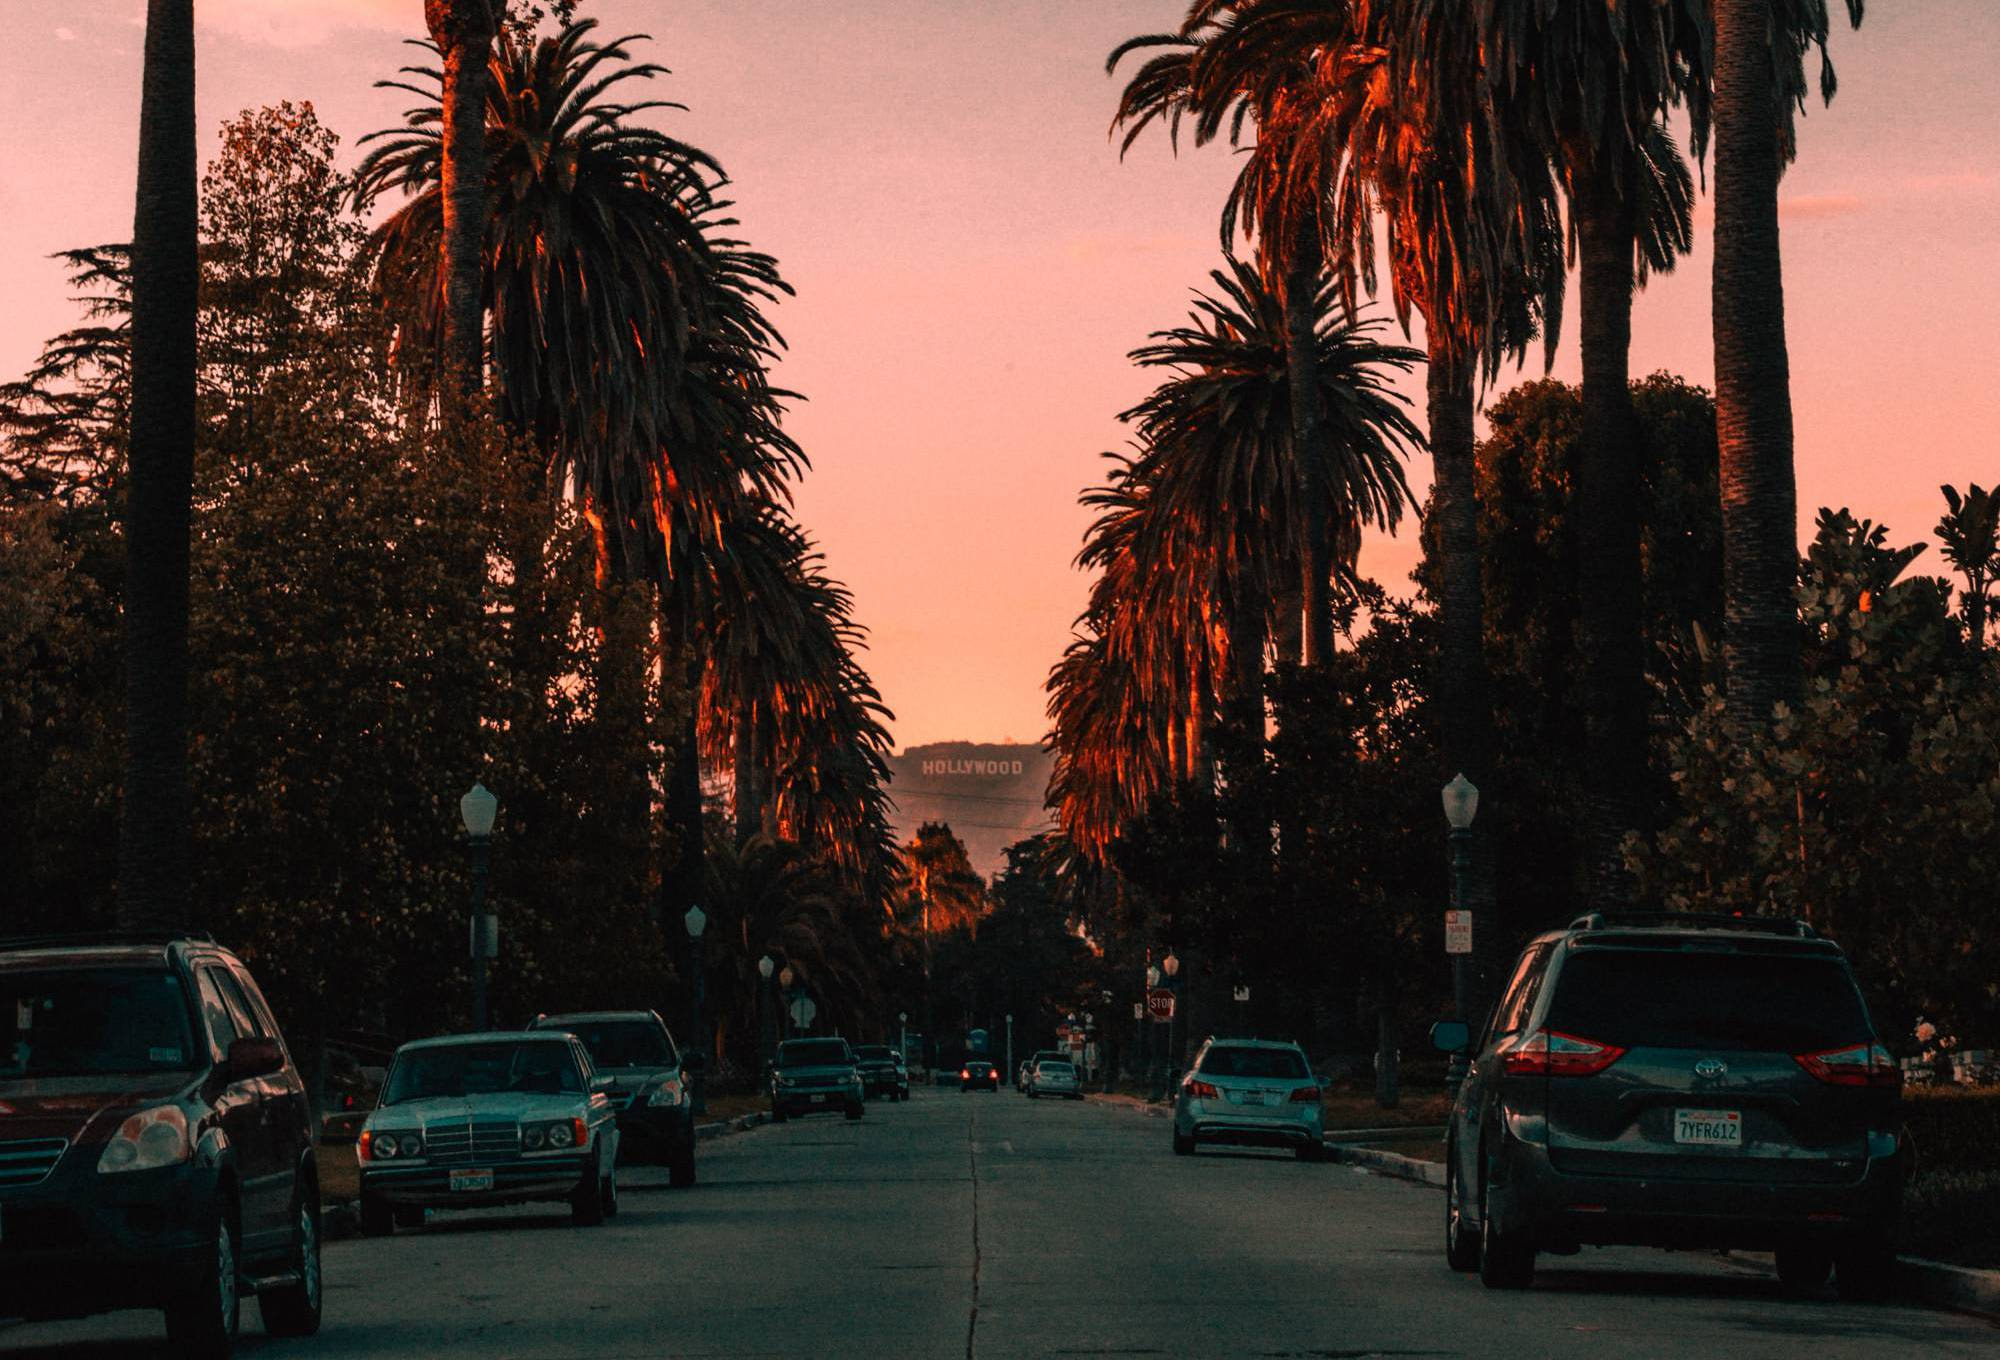 A spectacular view of the Sunset in Hollywood